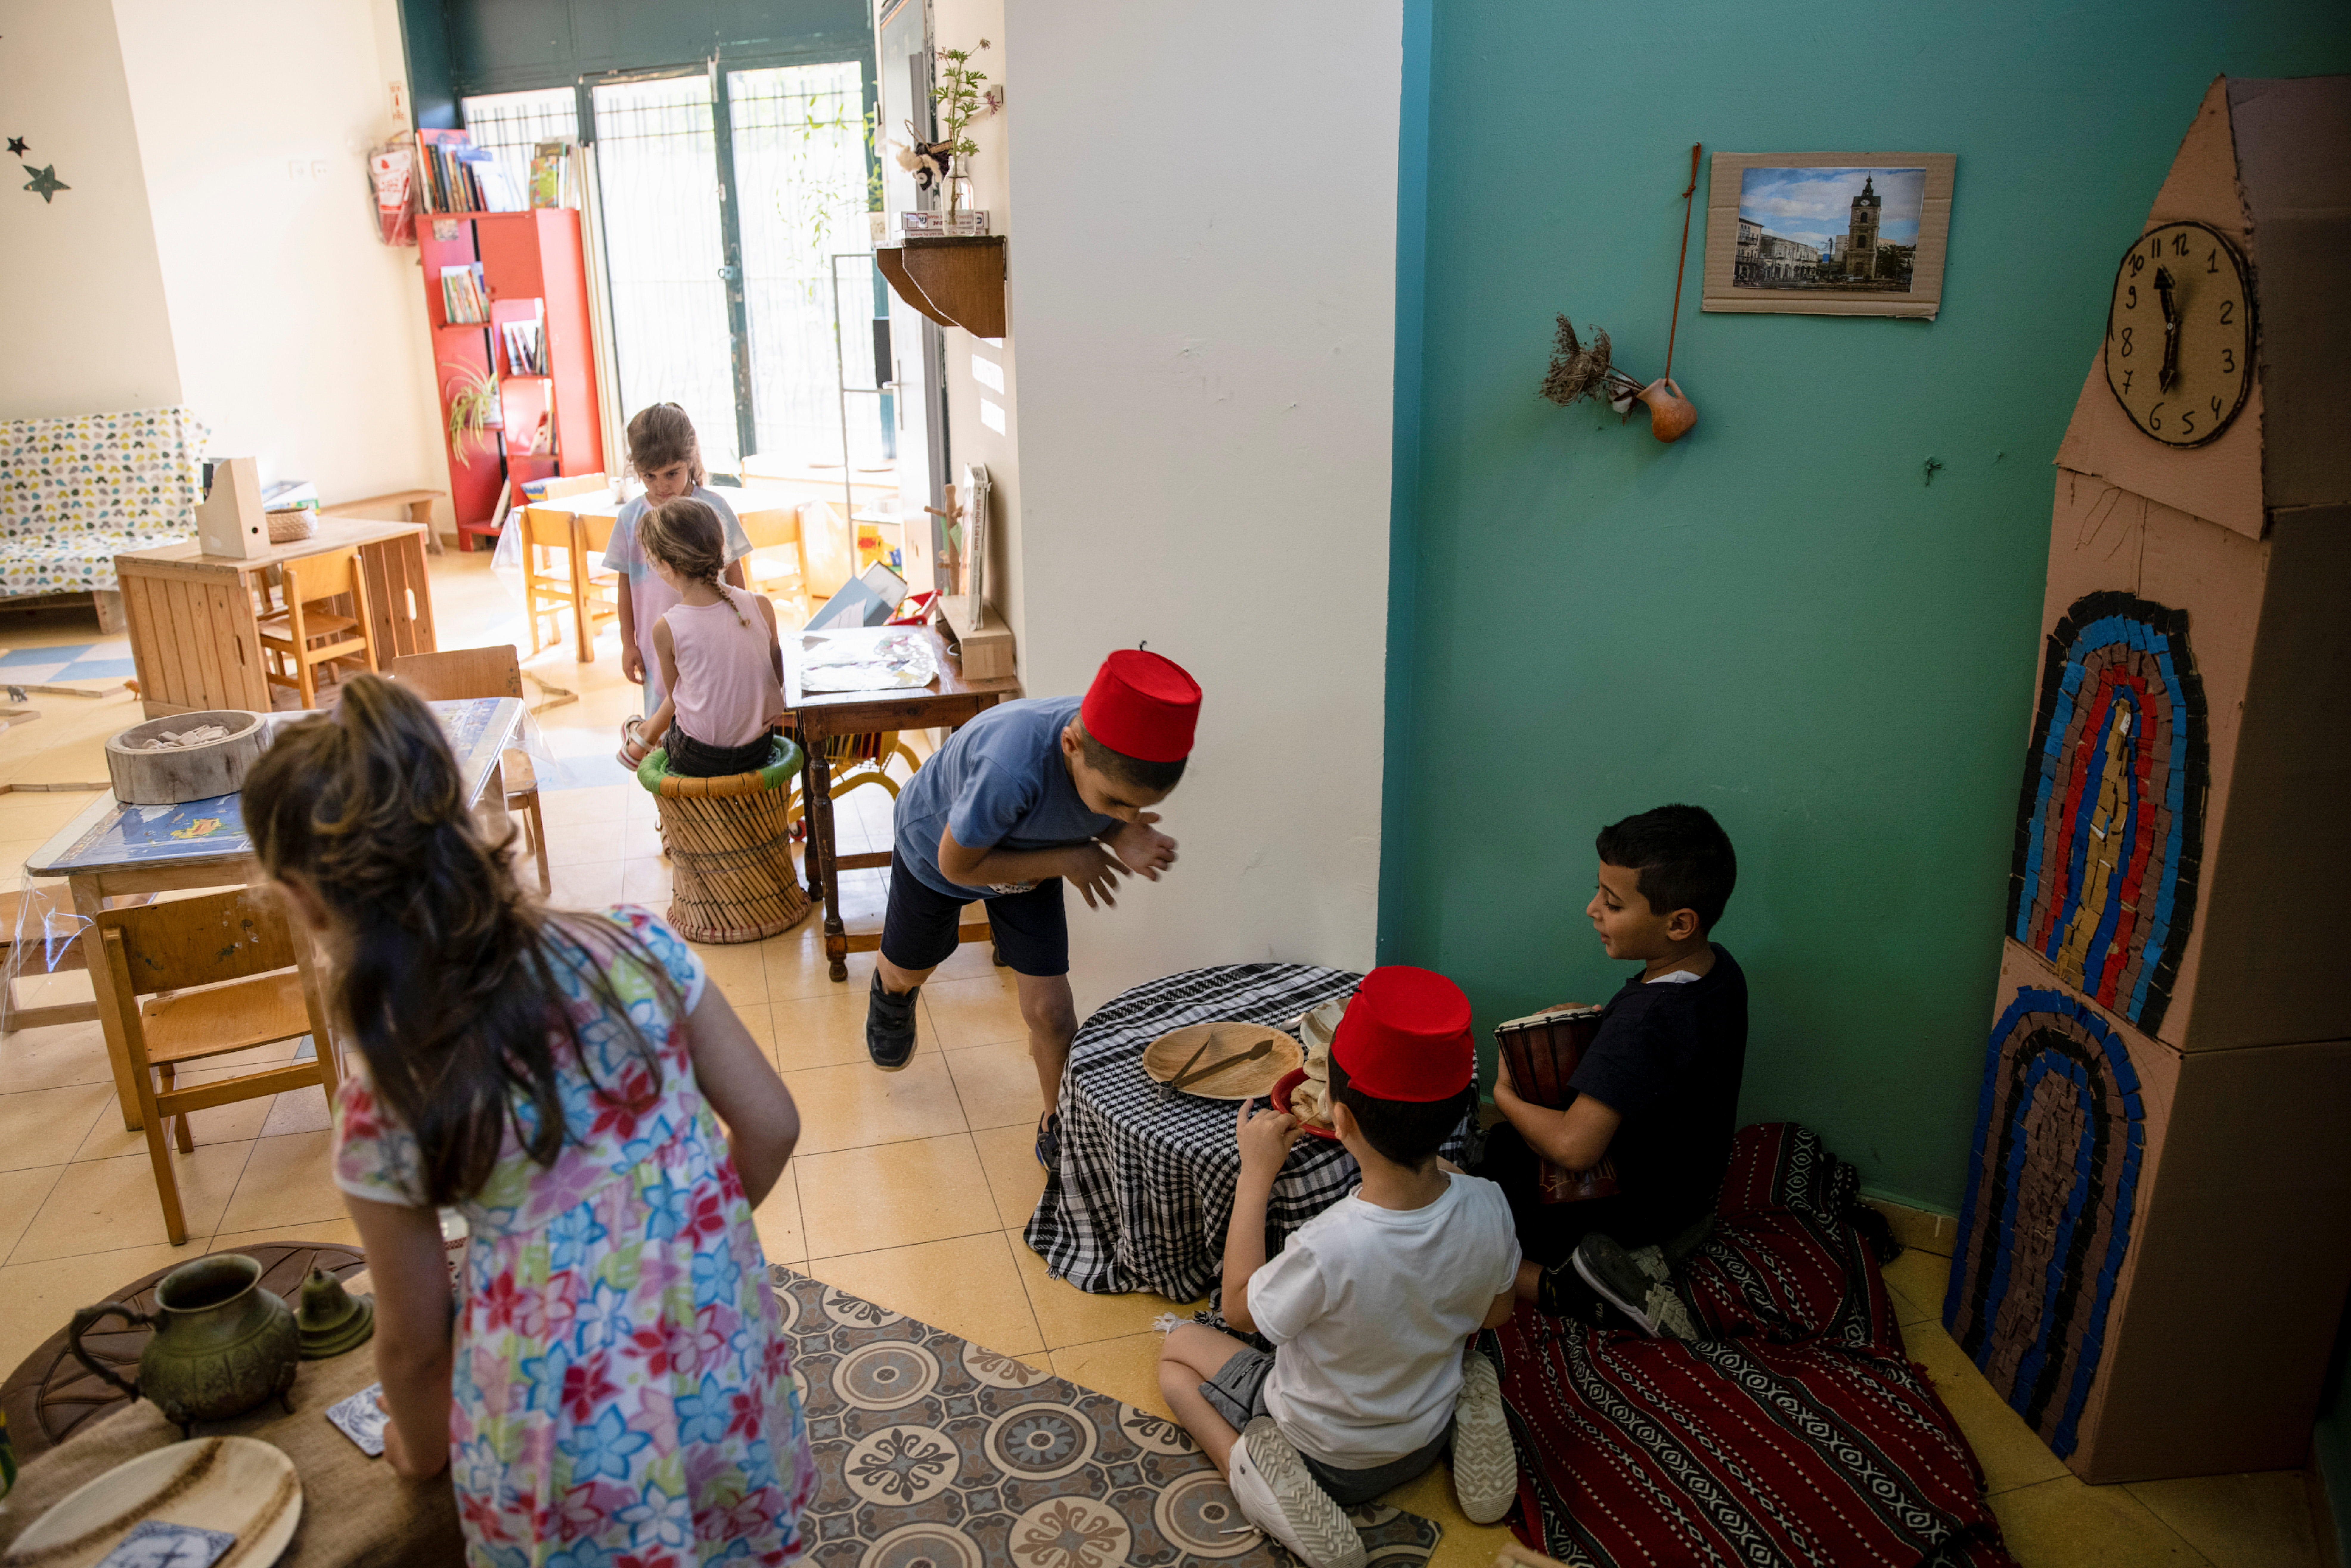 Children play in a classroom at Hand in Hand, a mixed Jewish-Arab kindergarten, in Jaffa, near Tel Aviv, Israel May 24, 2021. Picture taken May 24, 2021. REUTERS/Ronen Zvulun